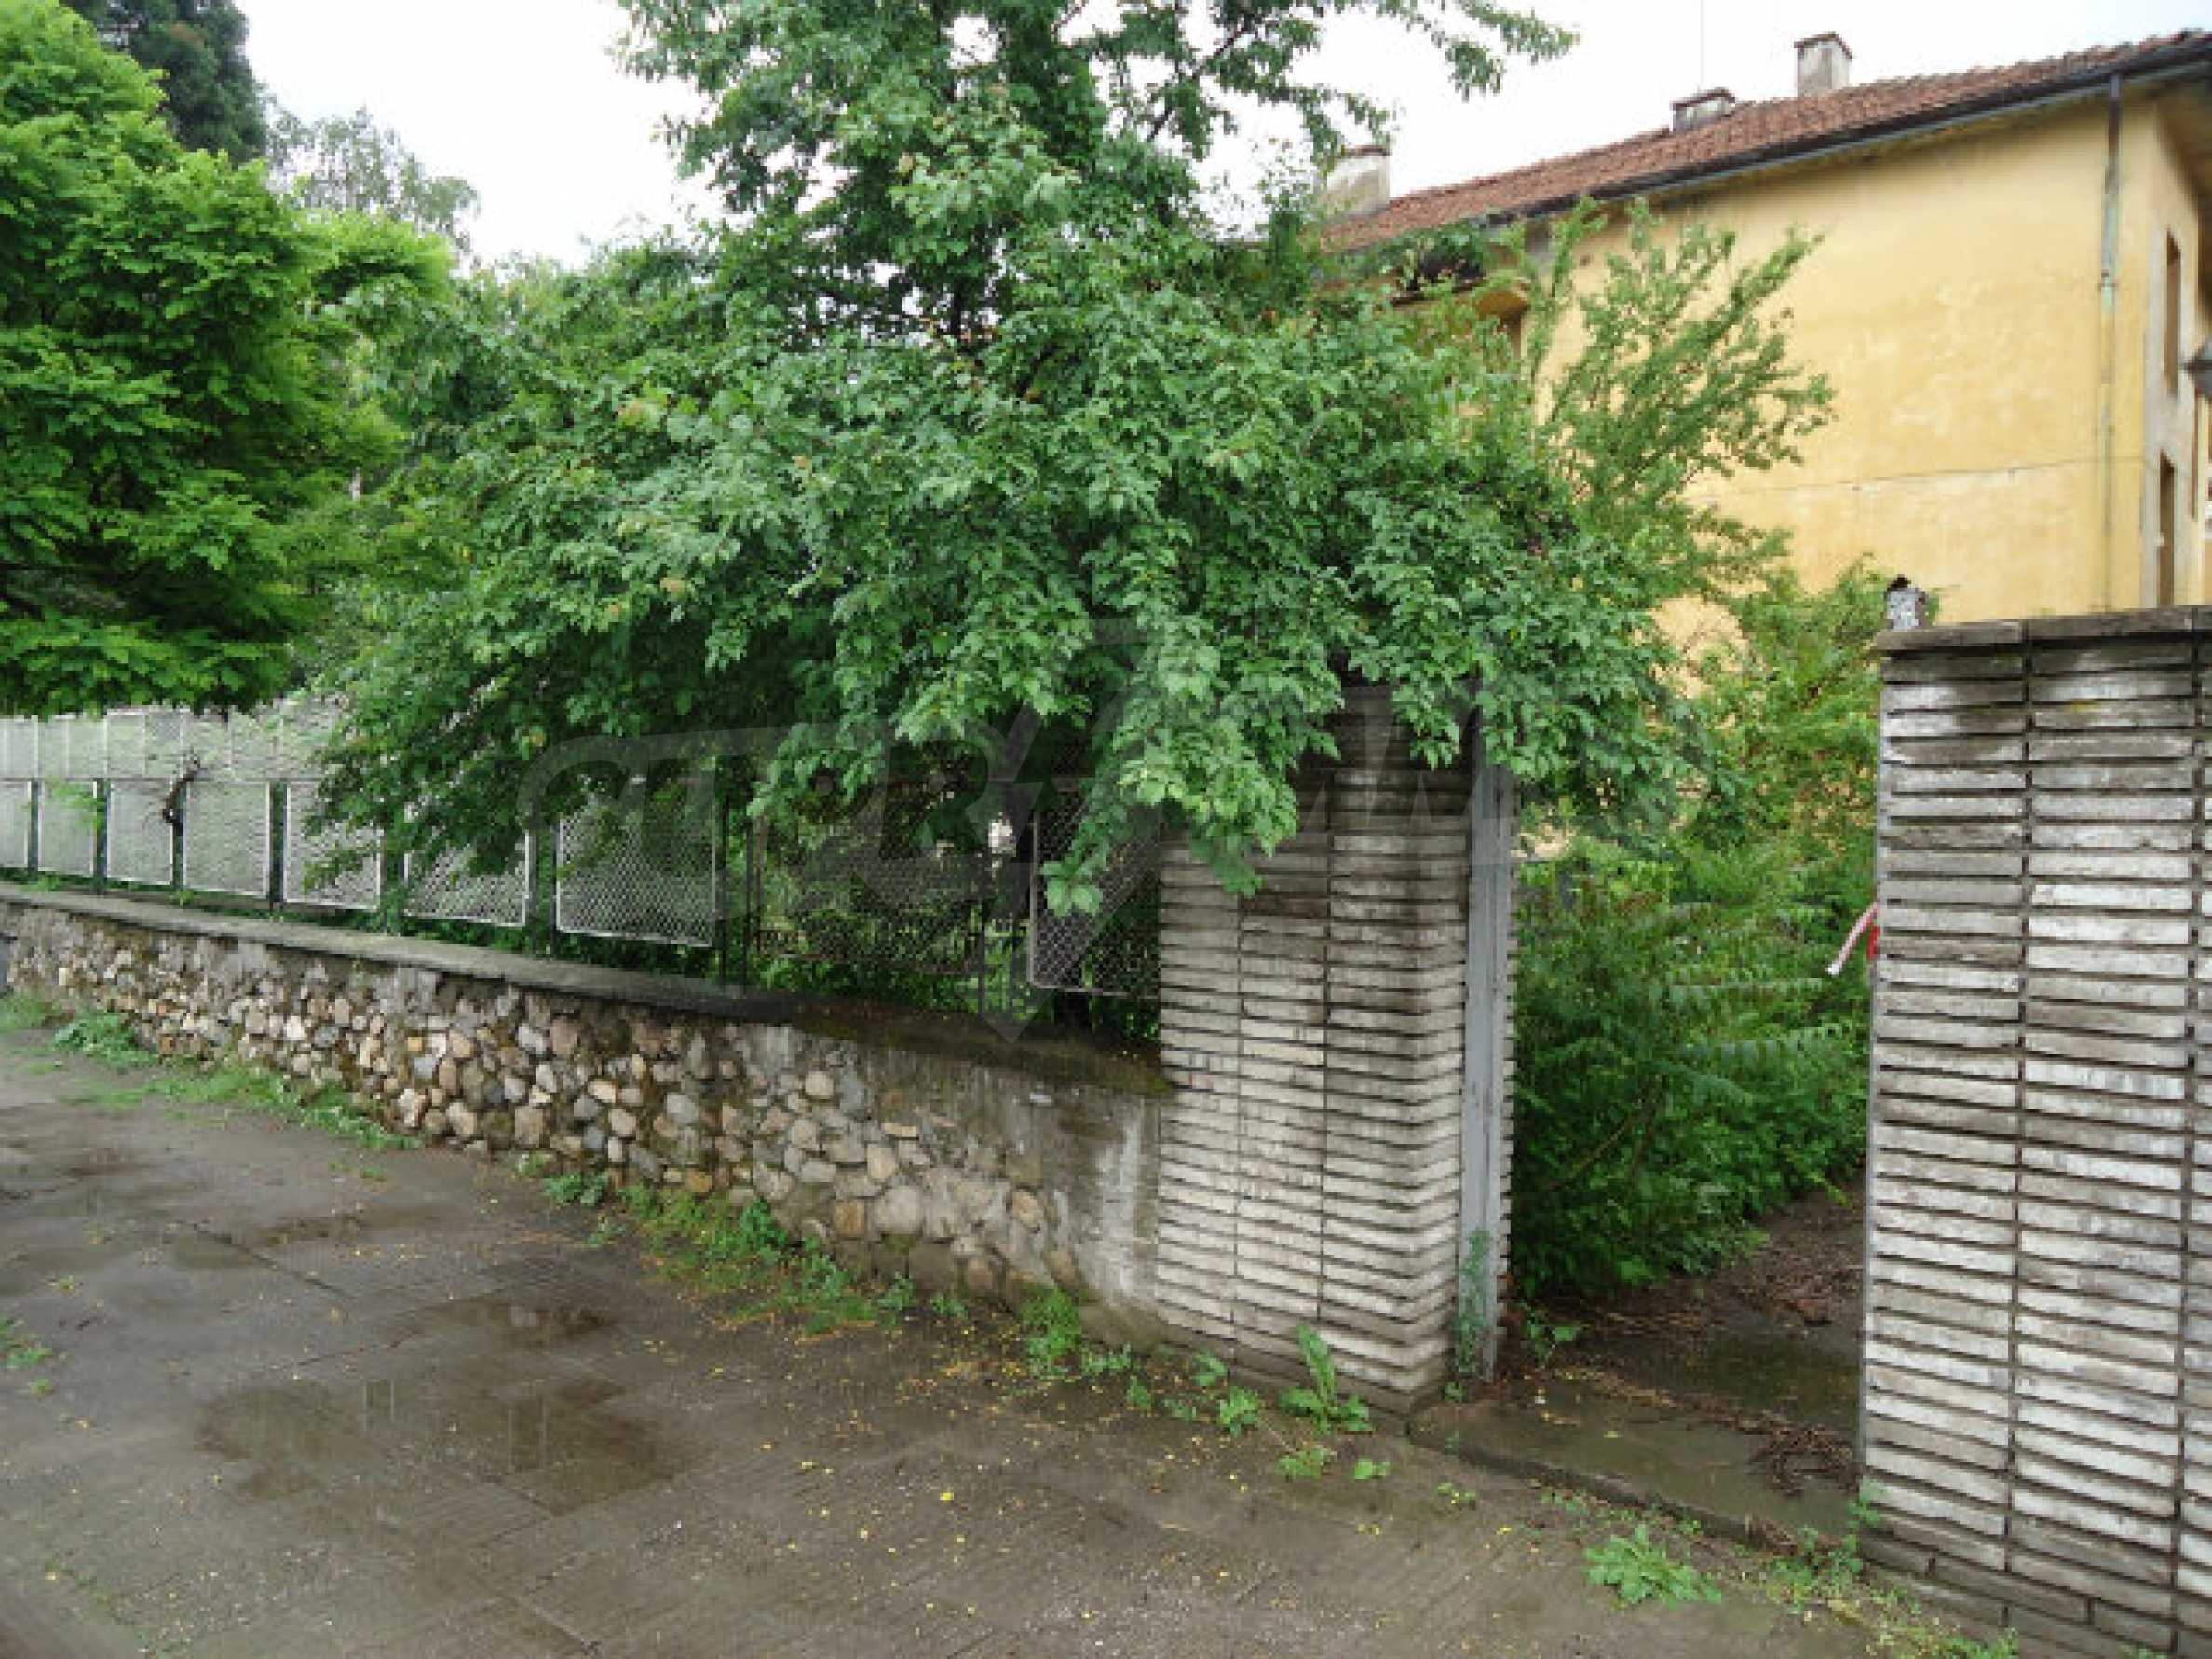 Building with garden area in the town of Kyustendil 3